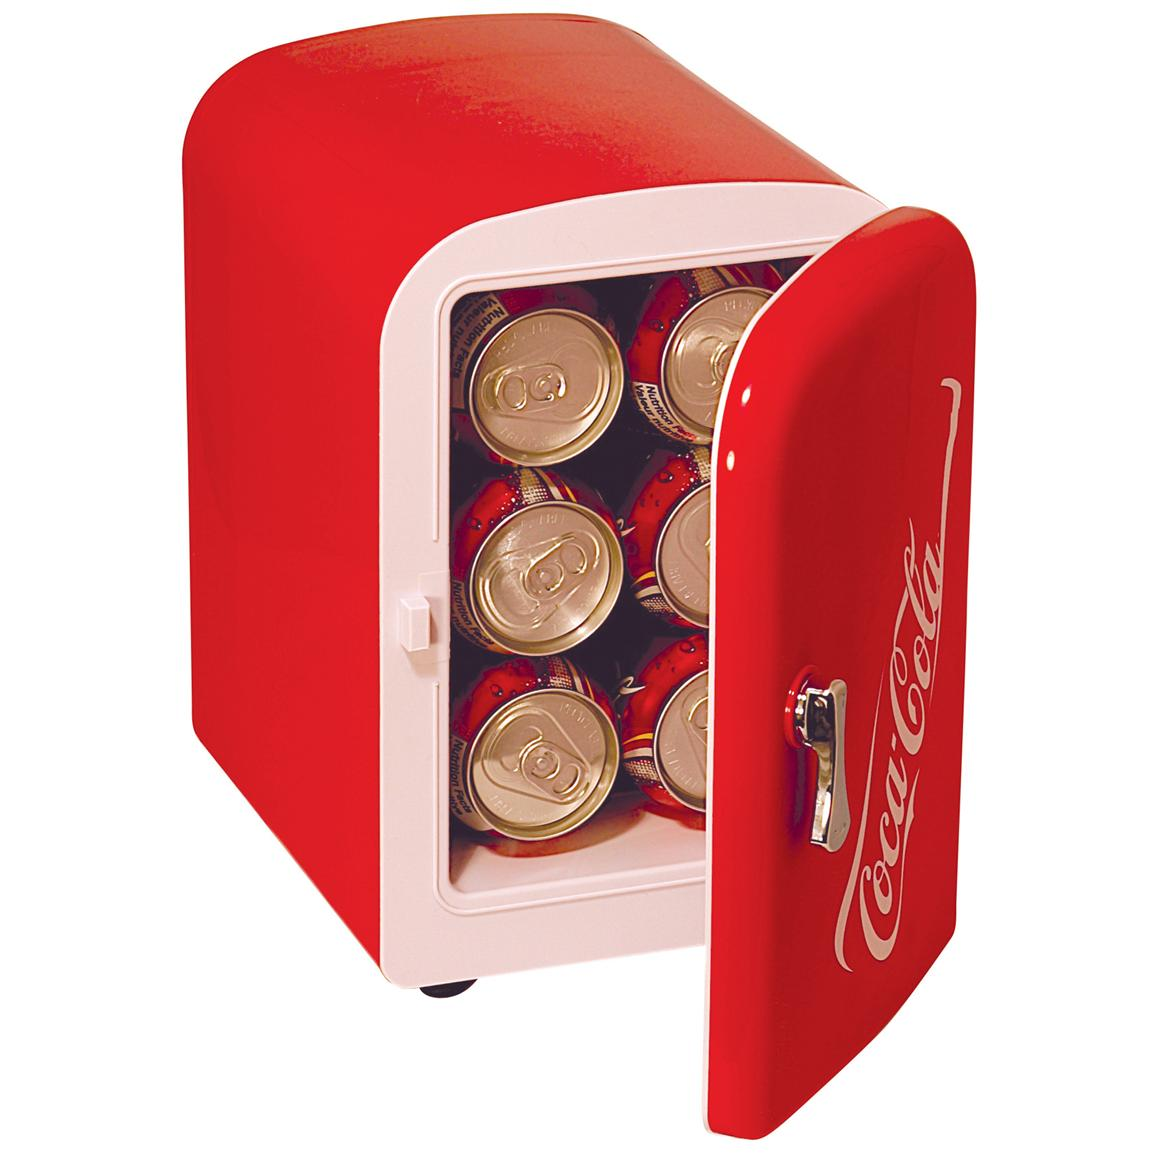 It holds up to six 12-oz. cans of soda or beer